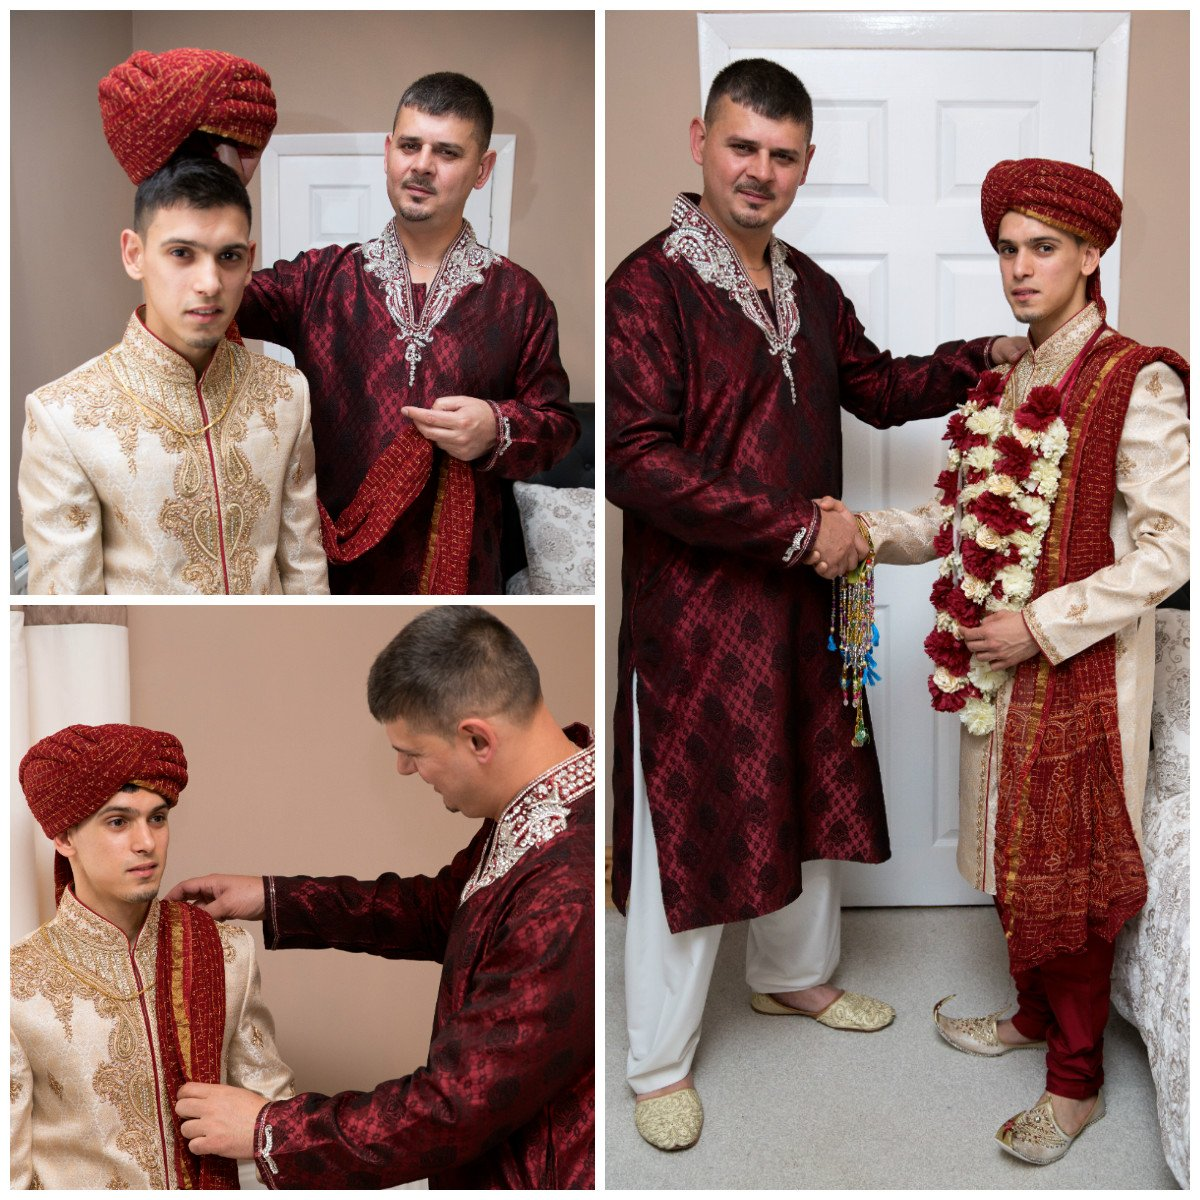 Muslim wedding photography and videography in Birmingham